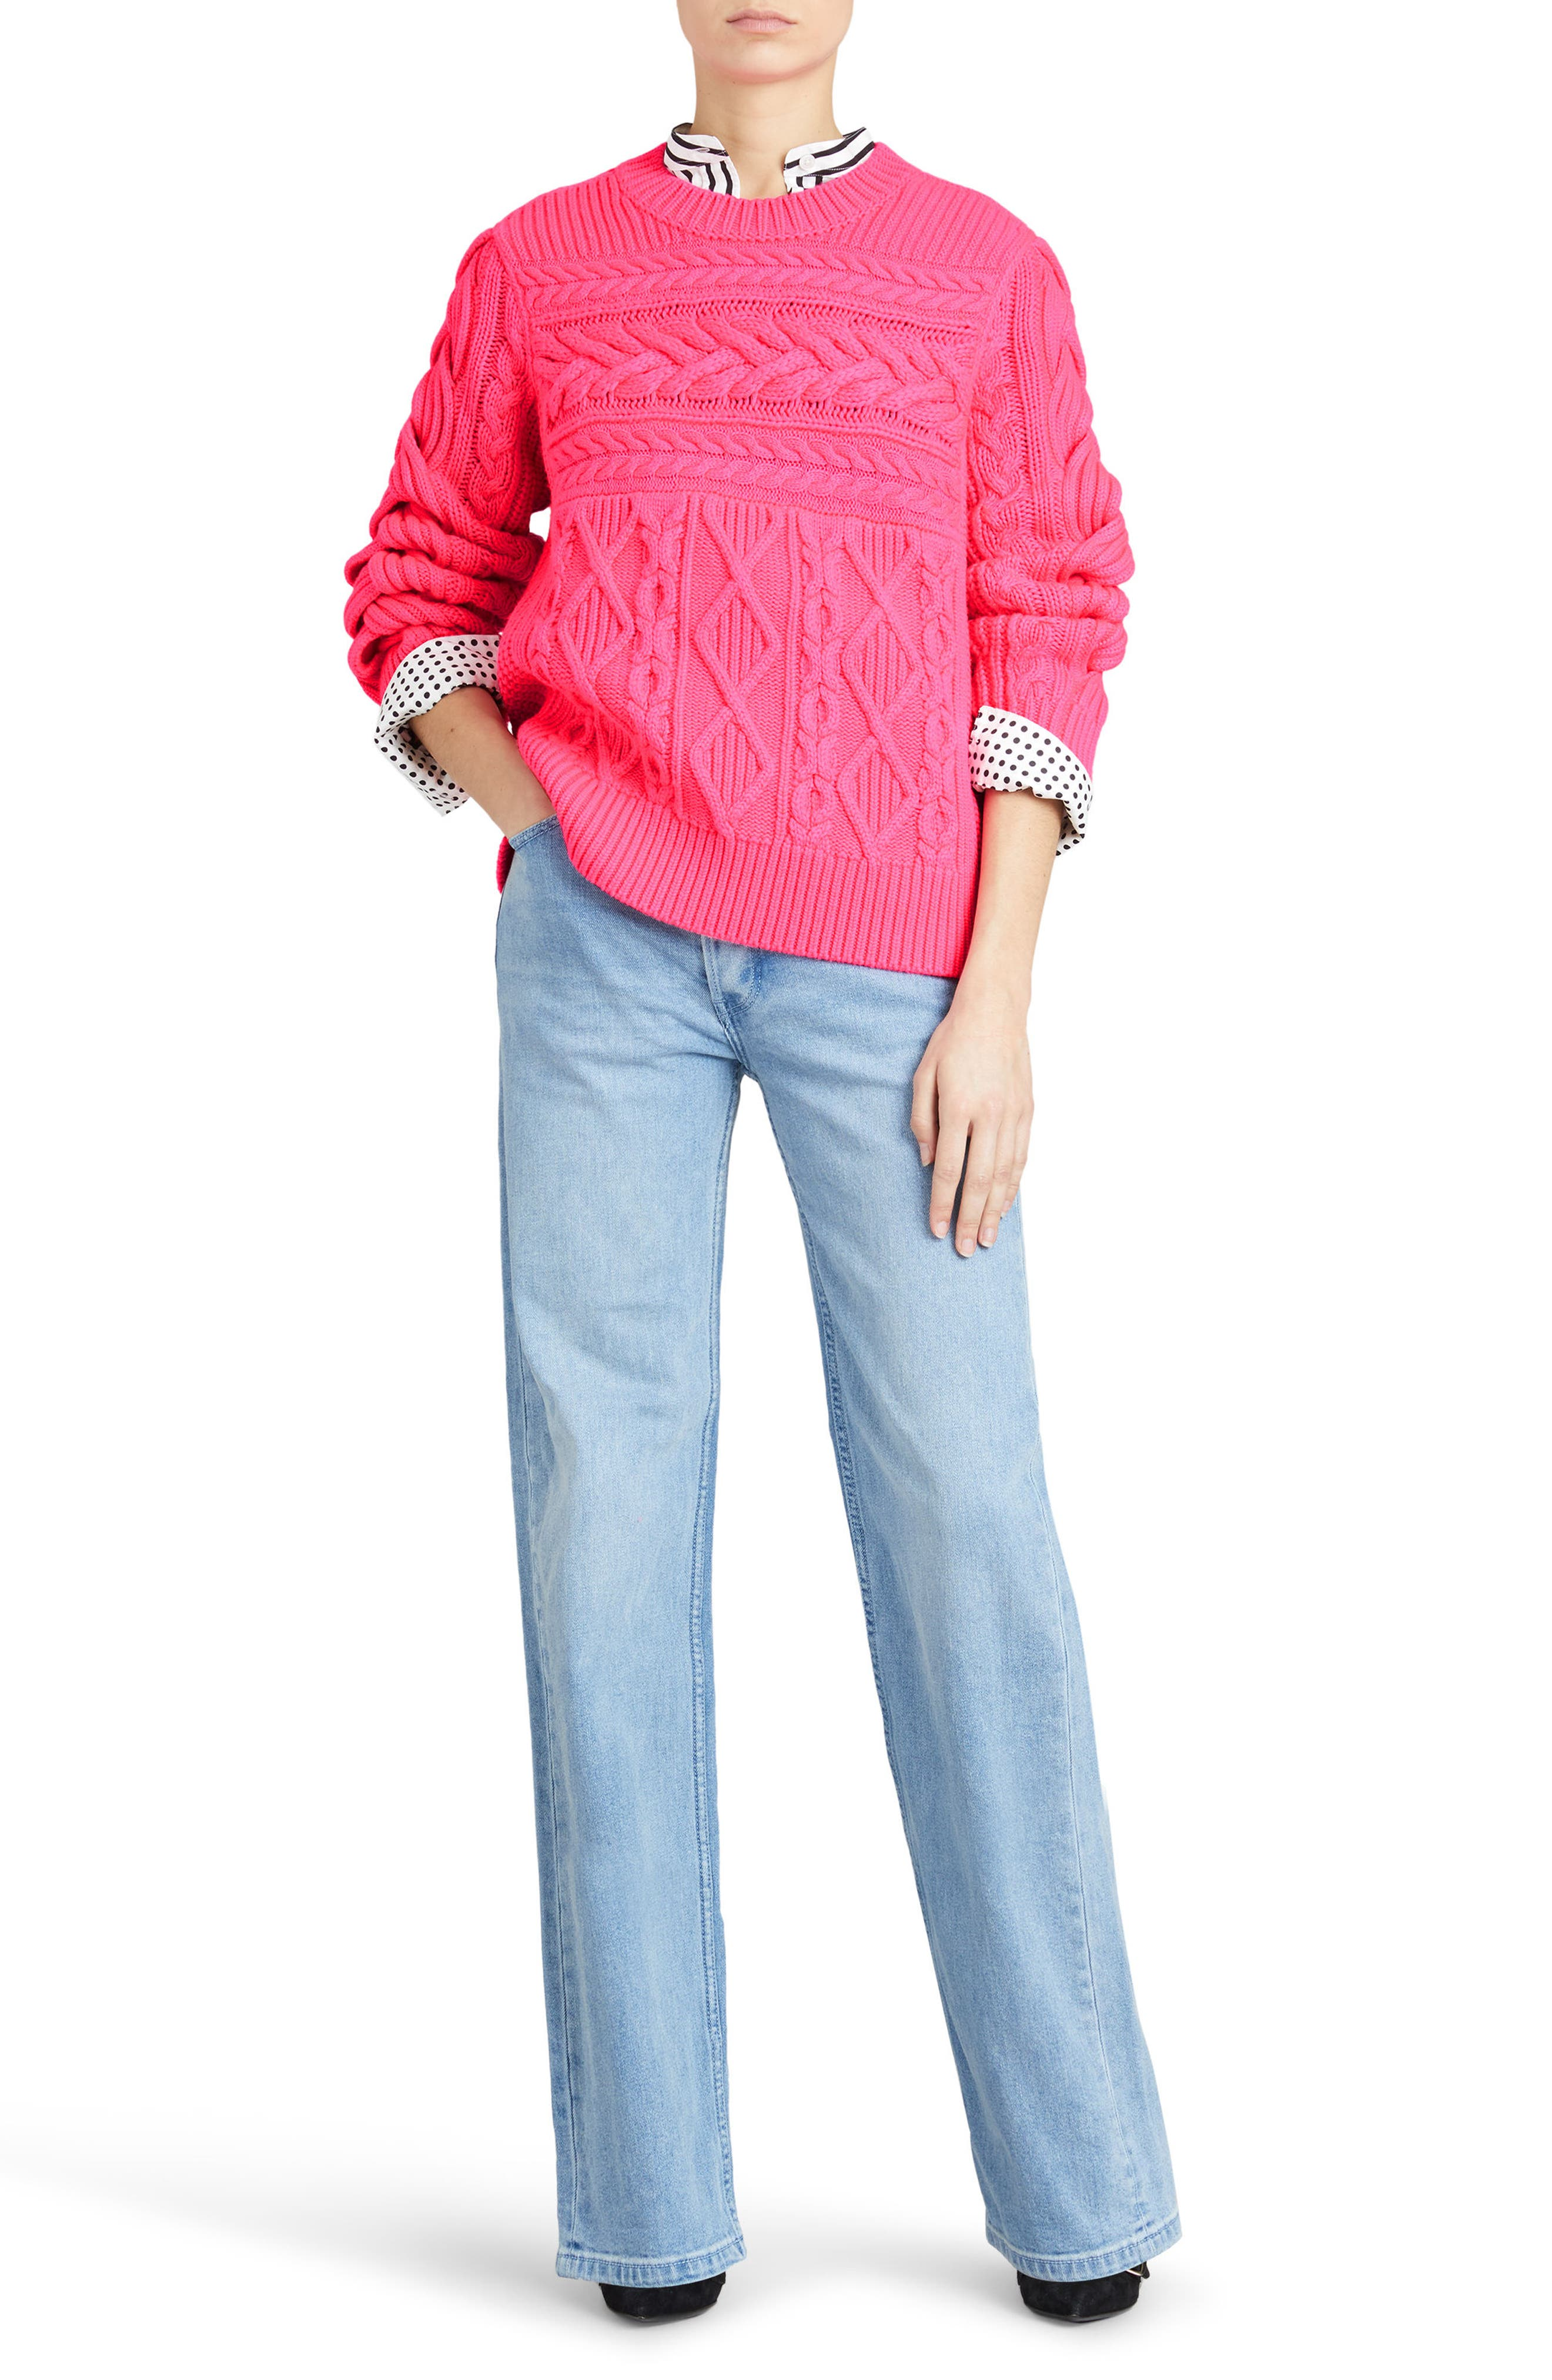 Tolman Aran Knit Sweater,                             Alternate thumbnail 4, color,